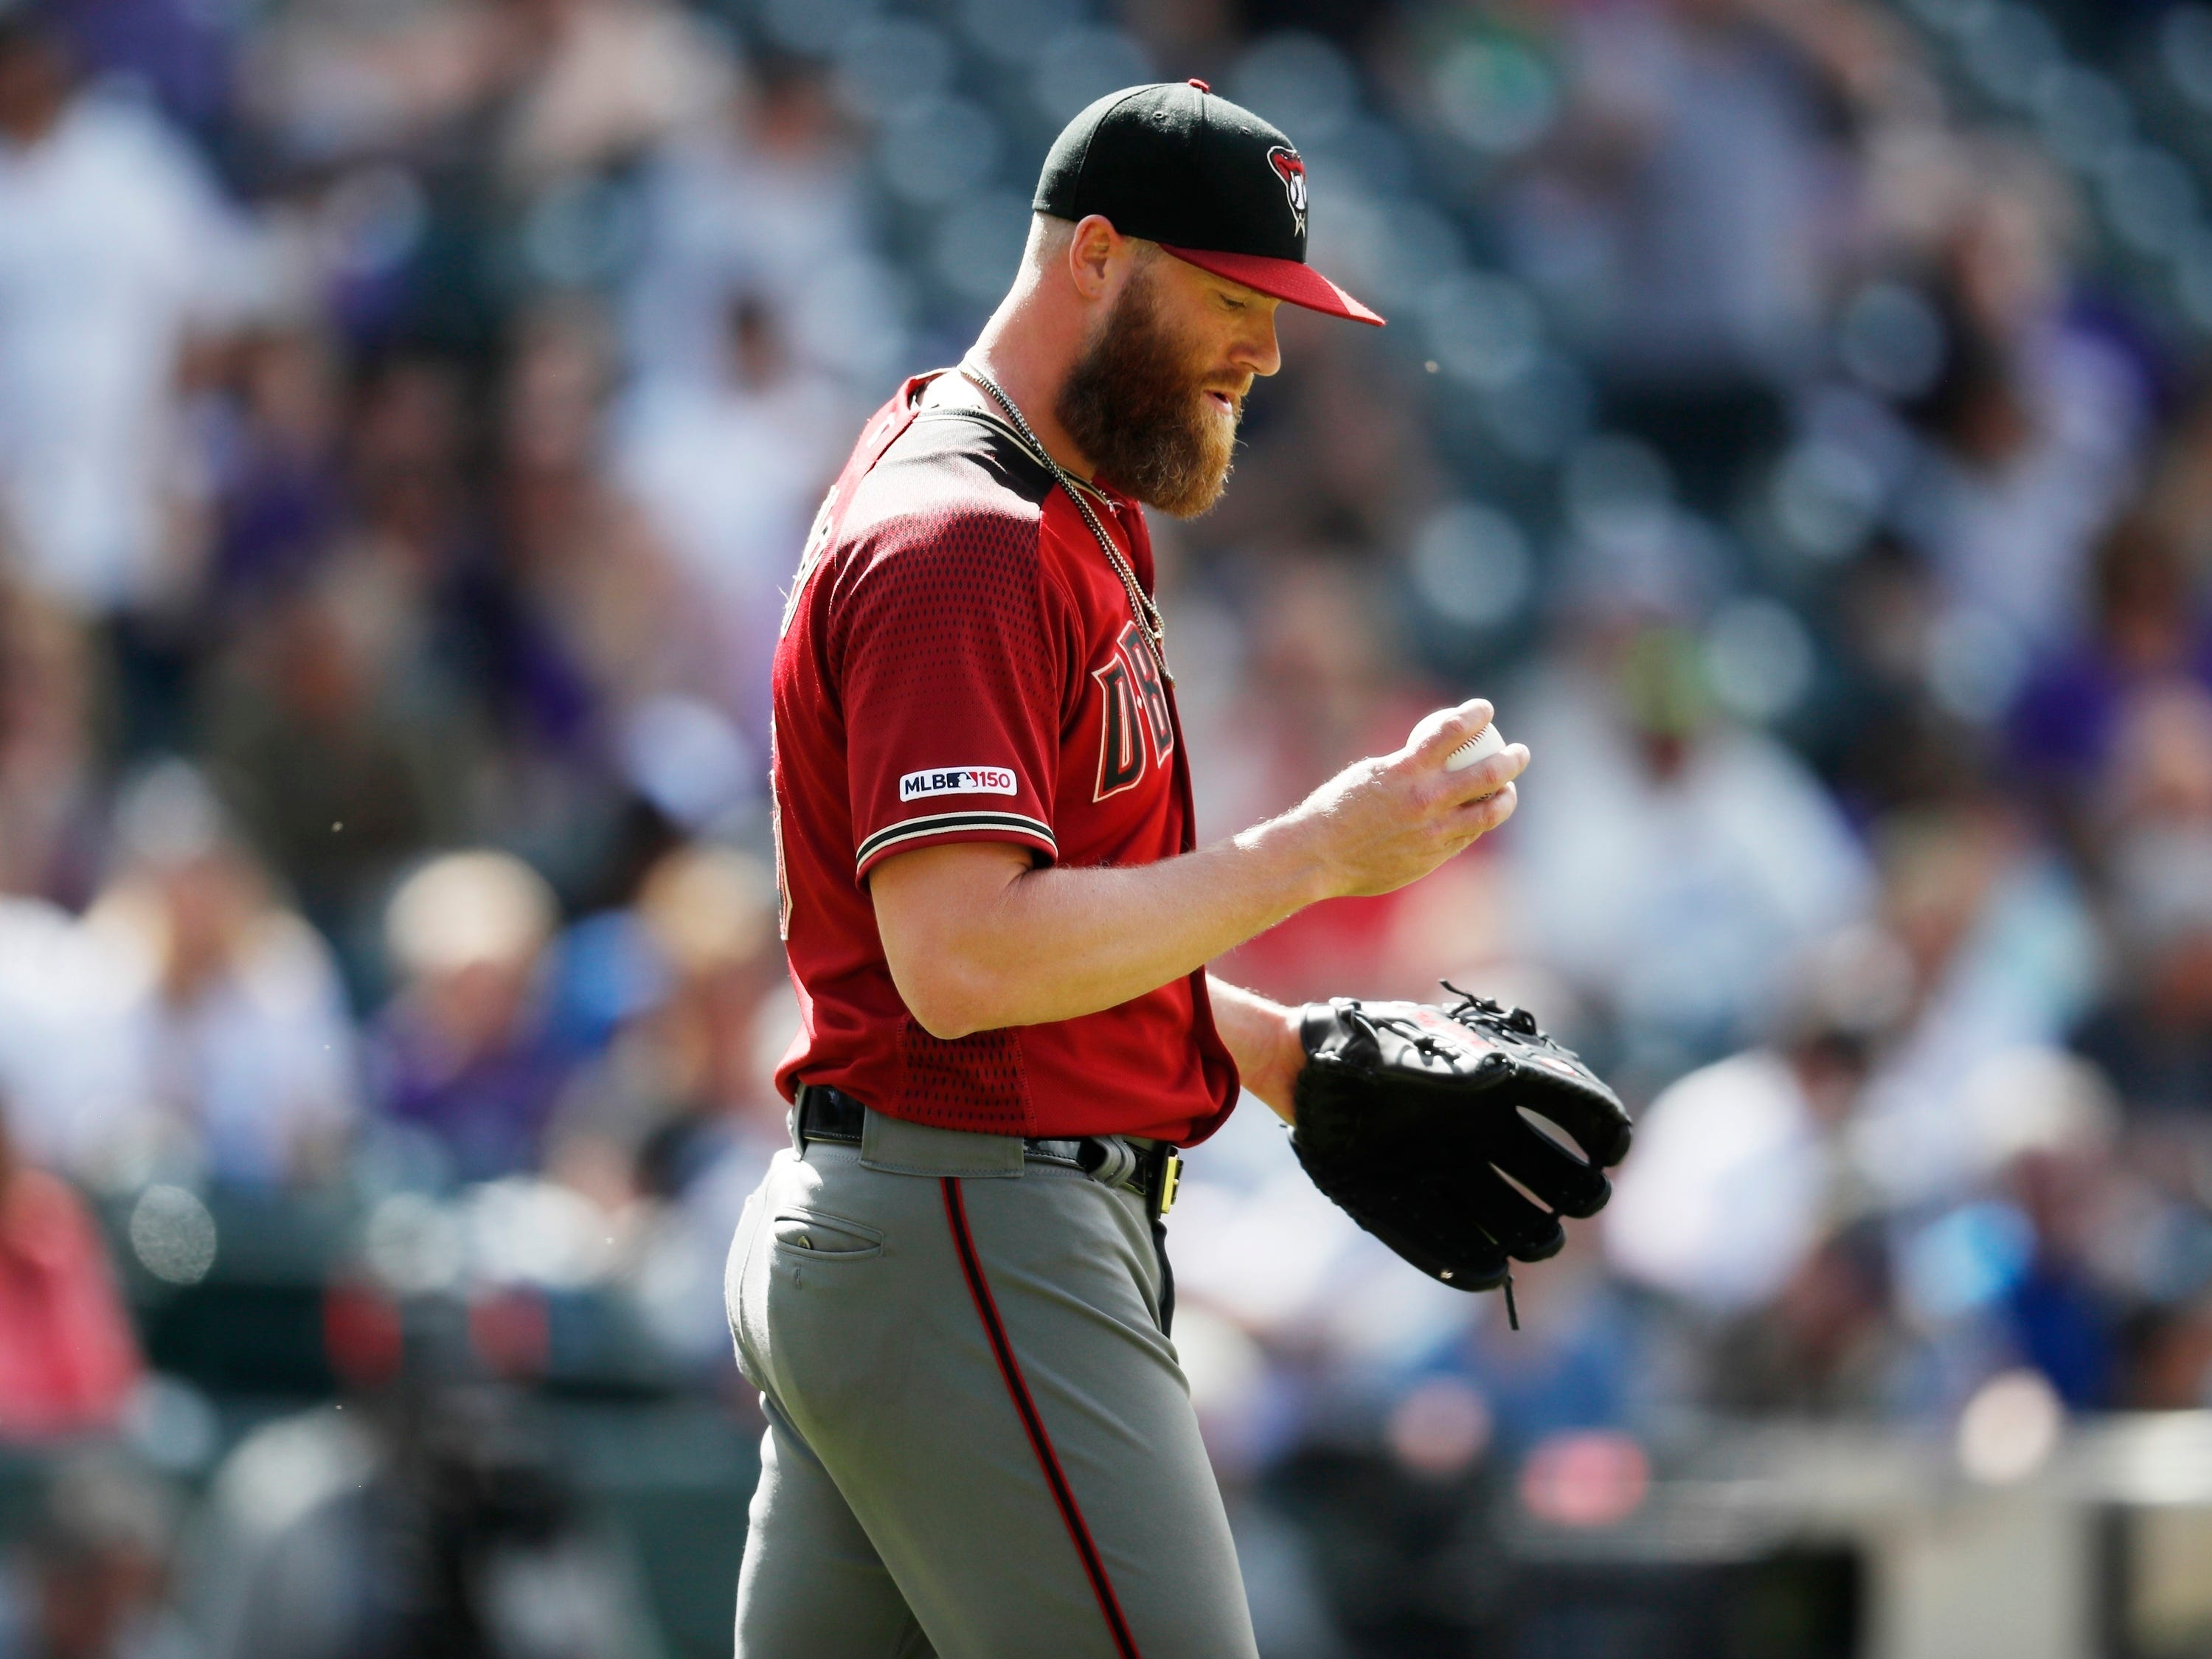 Arizona Diamondbacks relief pitcher Archie Bradley reacts after giving up a single to Colorado Rockies' Nolan Arenado in the eighth inning of a baseball game Sunday, May 5, 2019, in Denver. The Rockies won 8-7. (AP Photo/David Zalubowski)